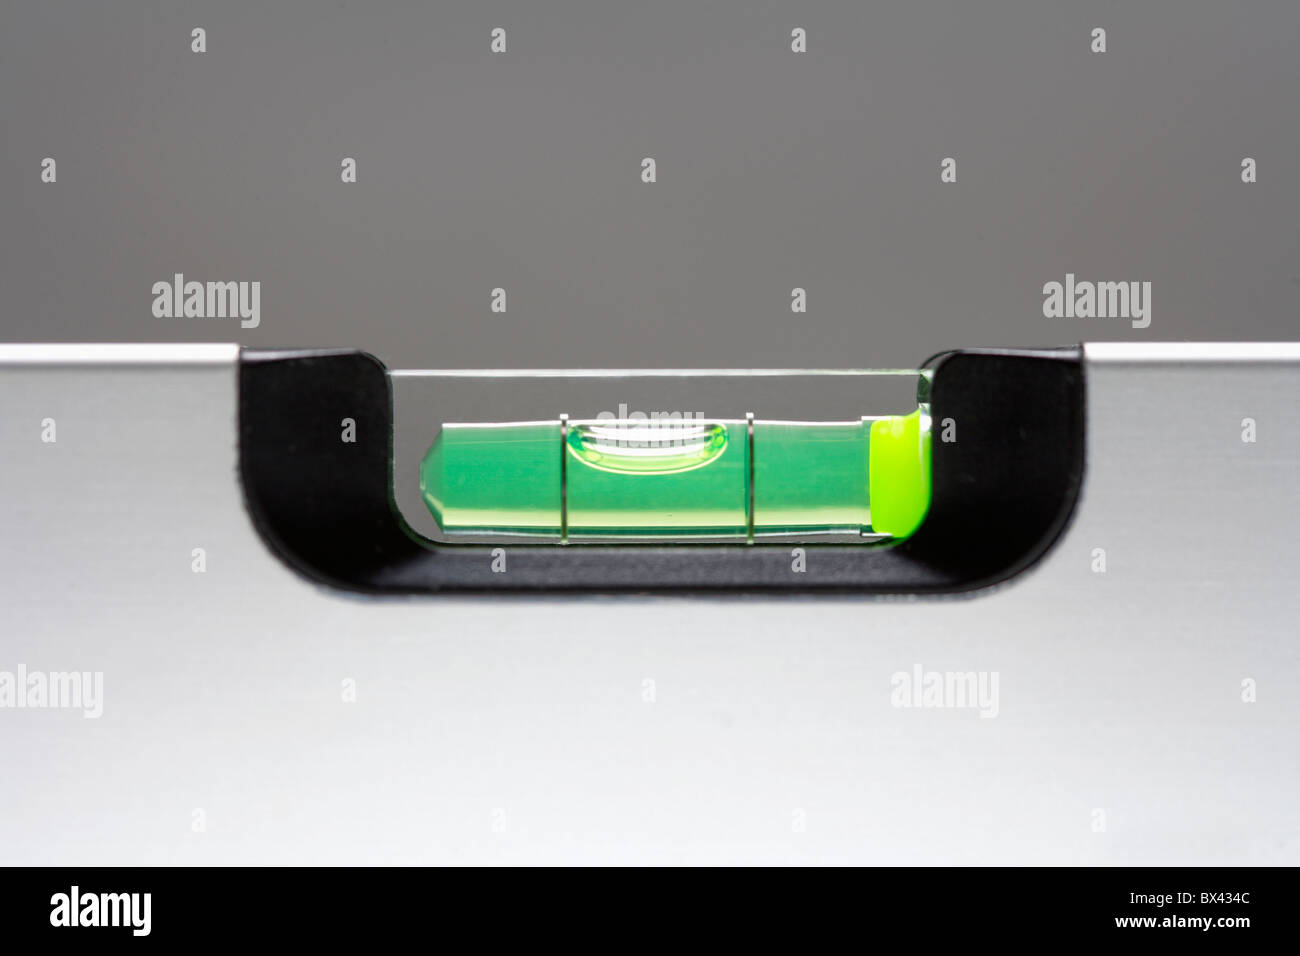 spirit level detail dragonfly plumb line construction building industry tools symbol scales Stock Photo